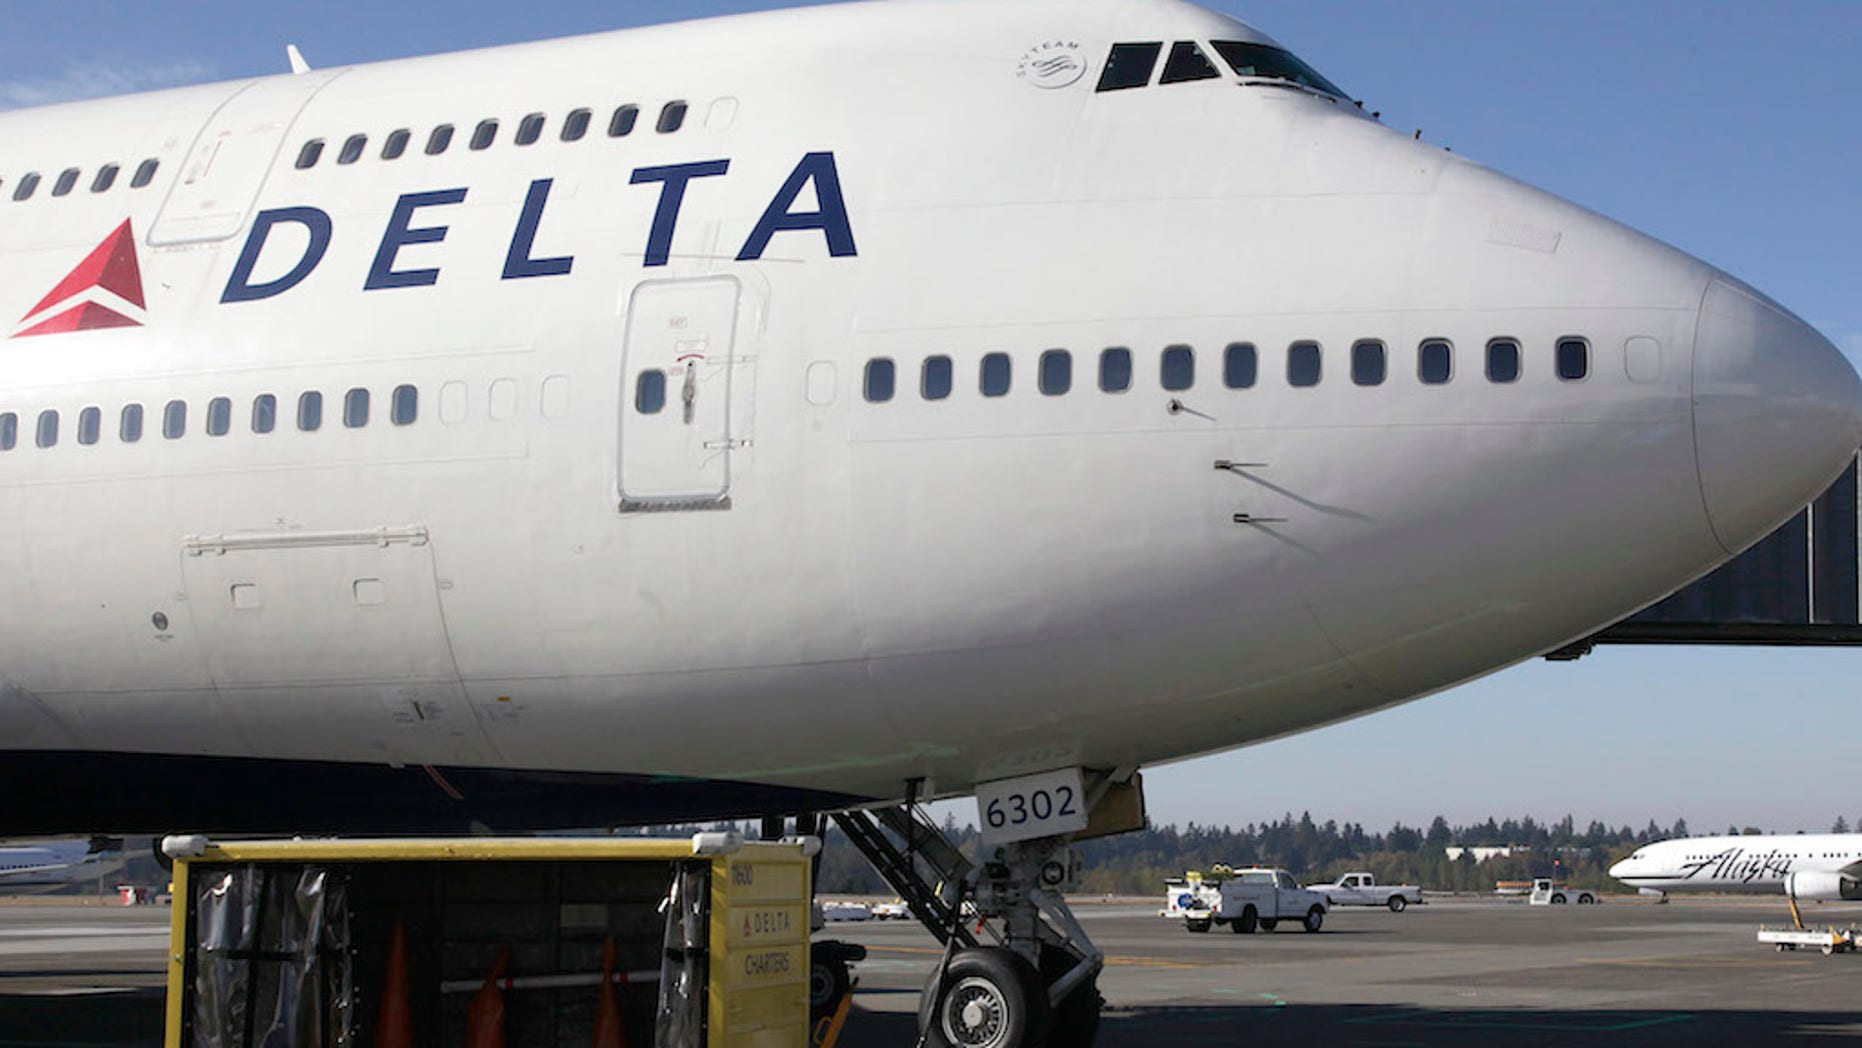 FILE - In this Oct. 8, 2012 file photo, a Delta Air Lines airplane is parked at Seattle-Tacoma International Airport in Seattle. Delta reports quarterly earnings on Wednesday, April 23, 2014. (AP Photo/Ted S. Warren File)